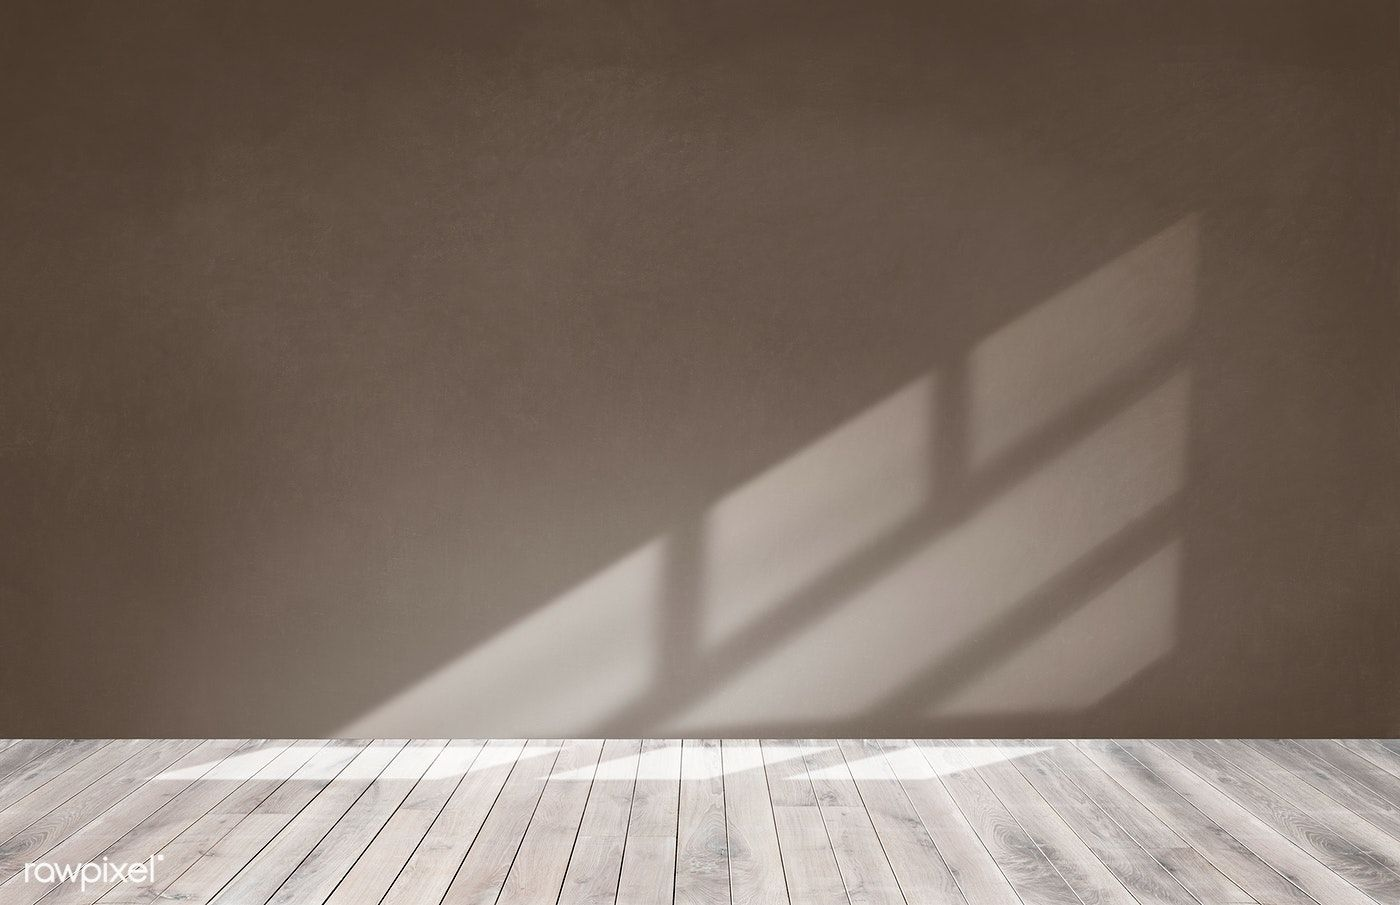 Download Premium Image Of Brown Wall In An Empty Room With A Wooden Floor In 2021 Brown Walls Empty Room Dark Brown Walls Bedroom wall wallpaper download